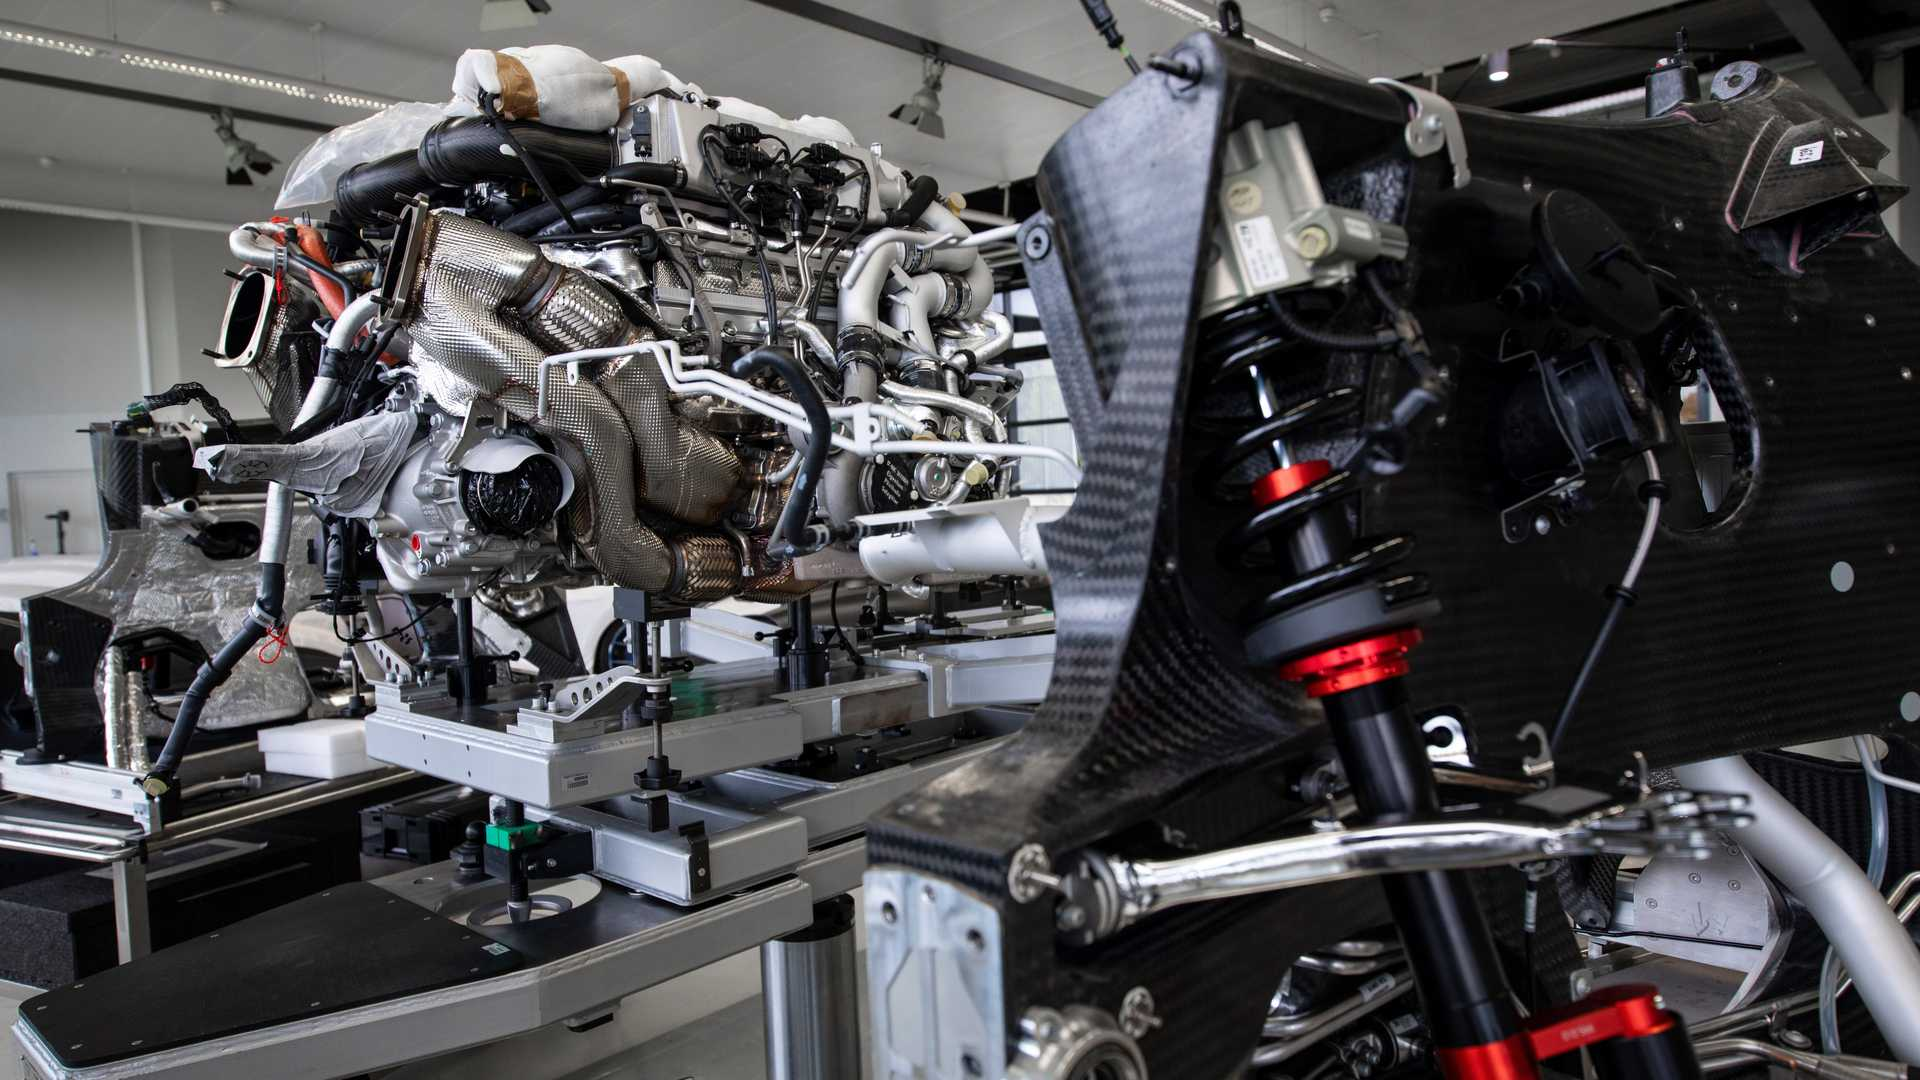 Bugatti: Combustion engine is the 'real state-of-the-art powertrain'